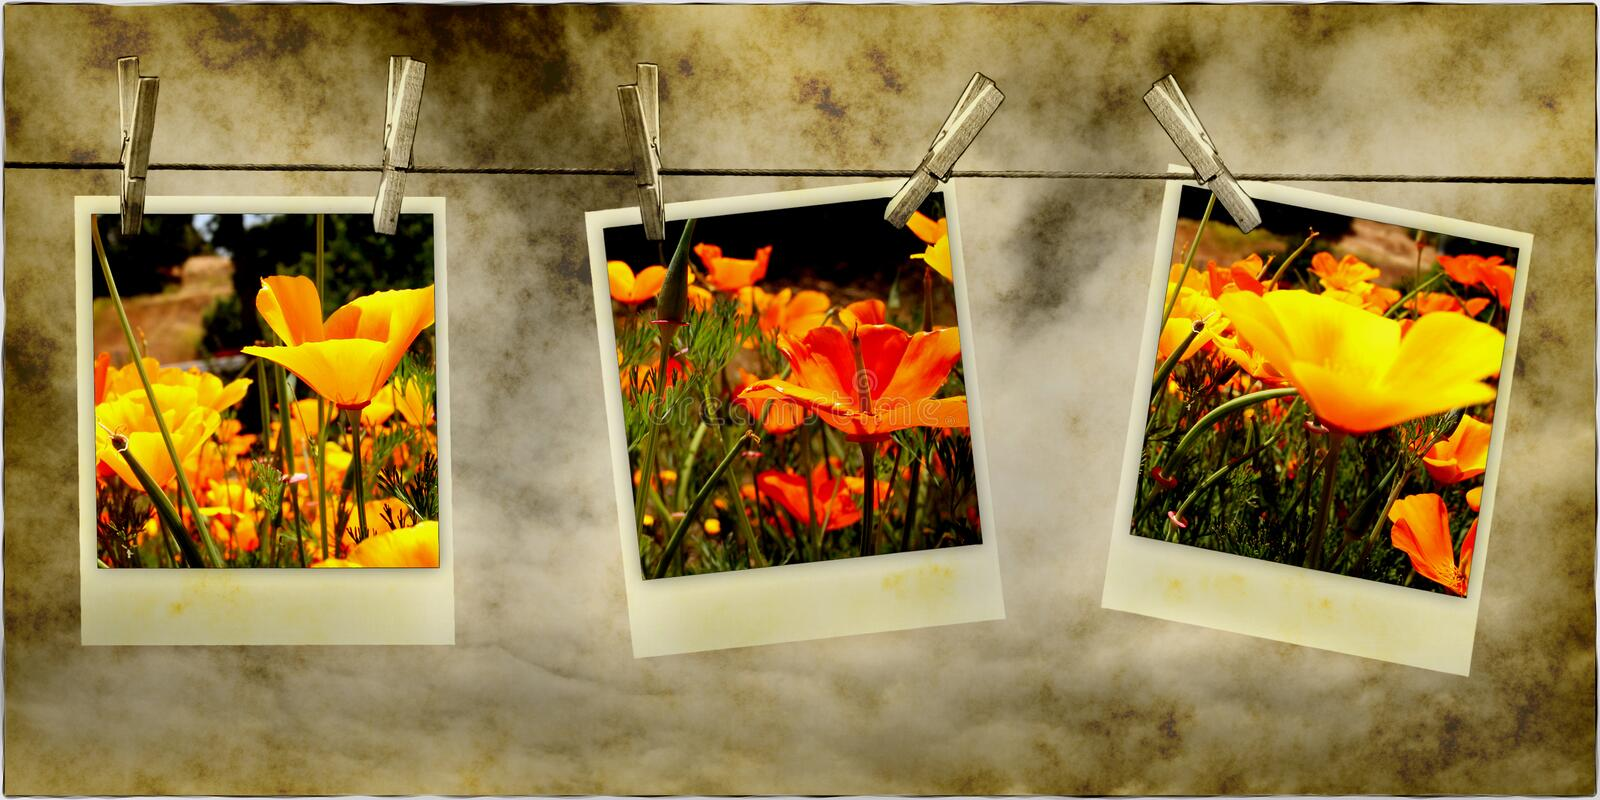 Download Hanging Flower Photos stock illustration. Image of clip - 11457805